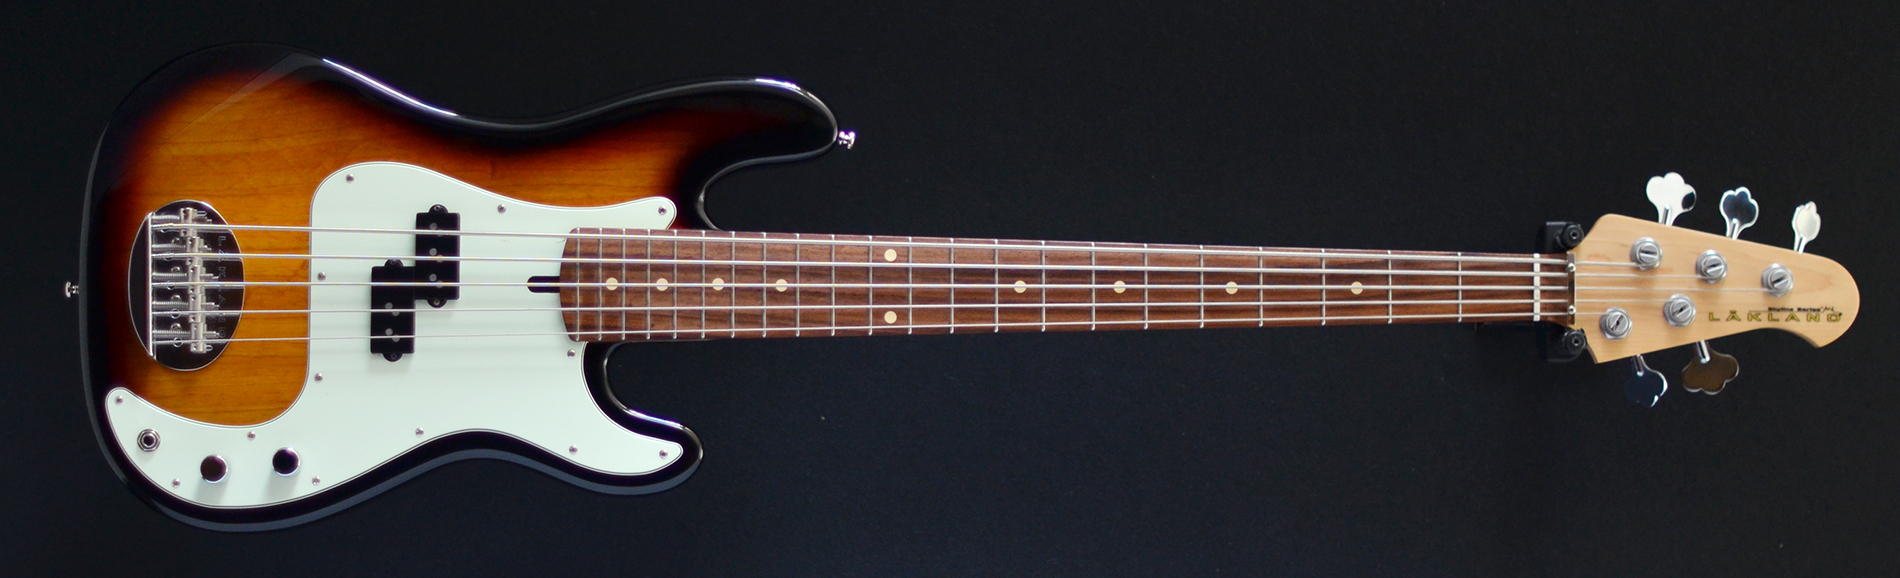 Skyline Series 55-64 Vintage P five string bass